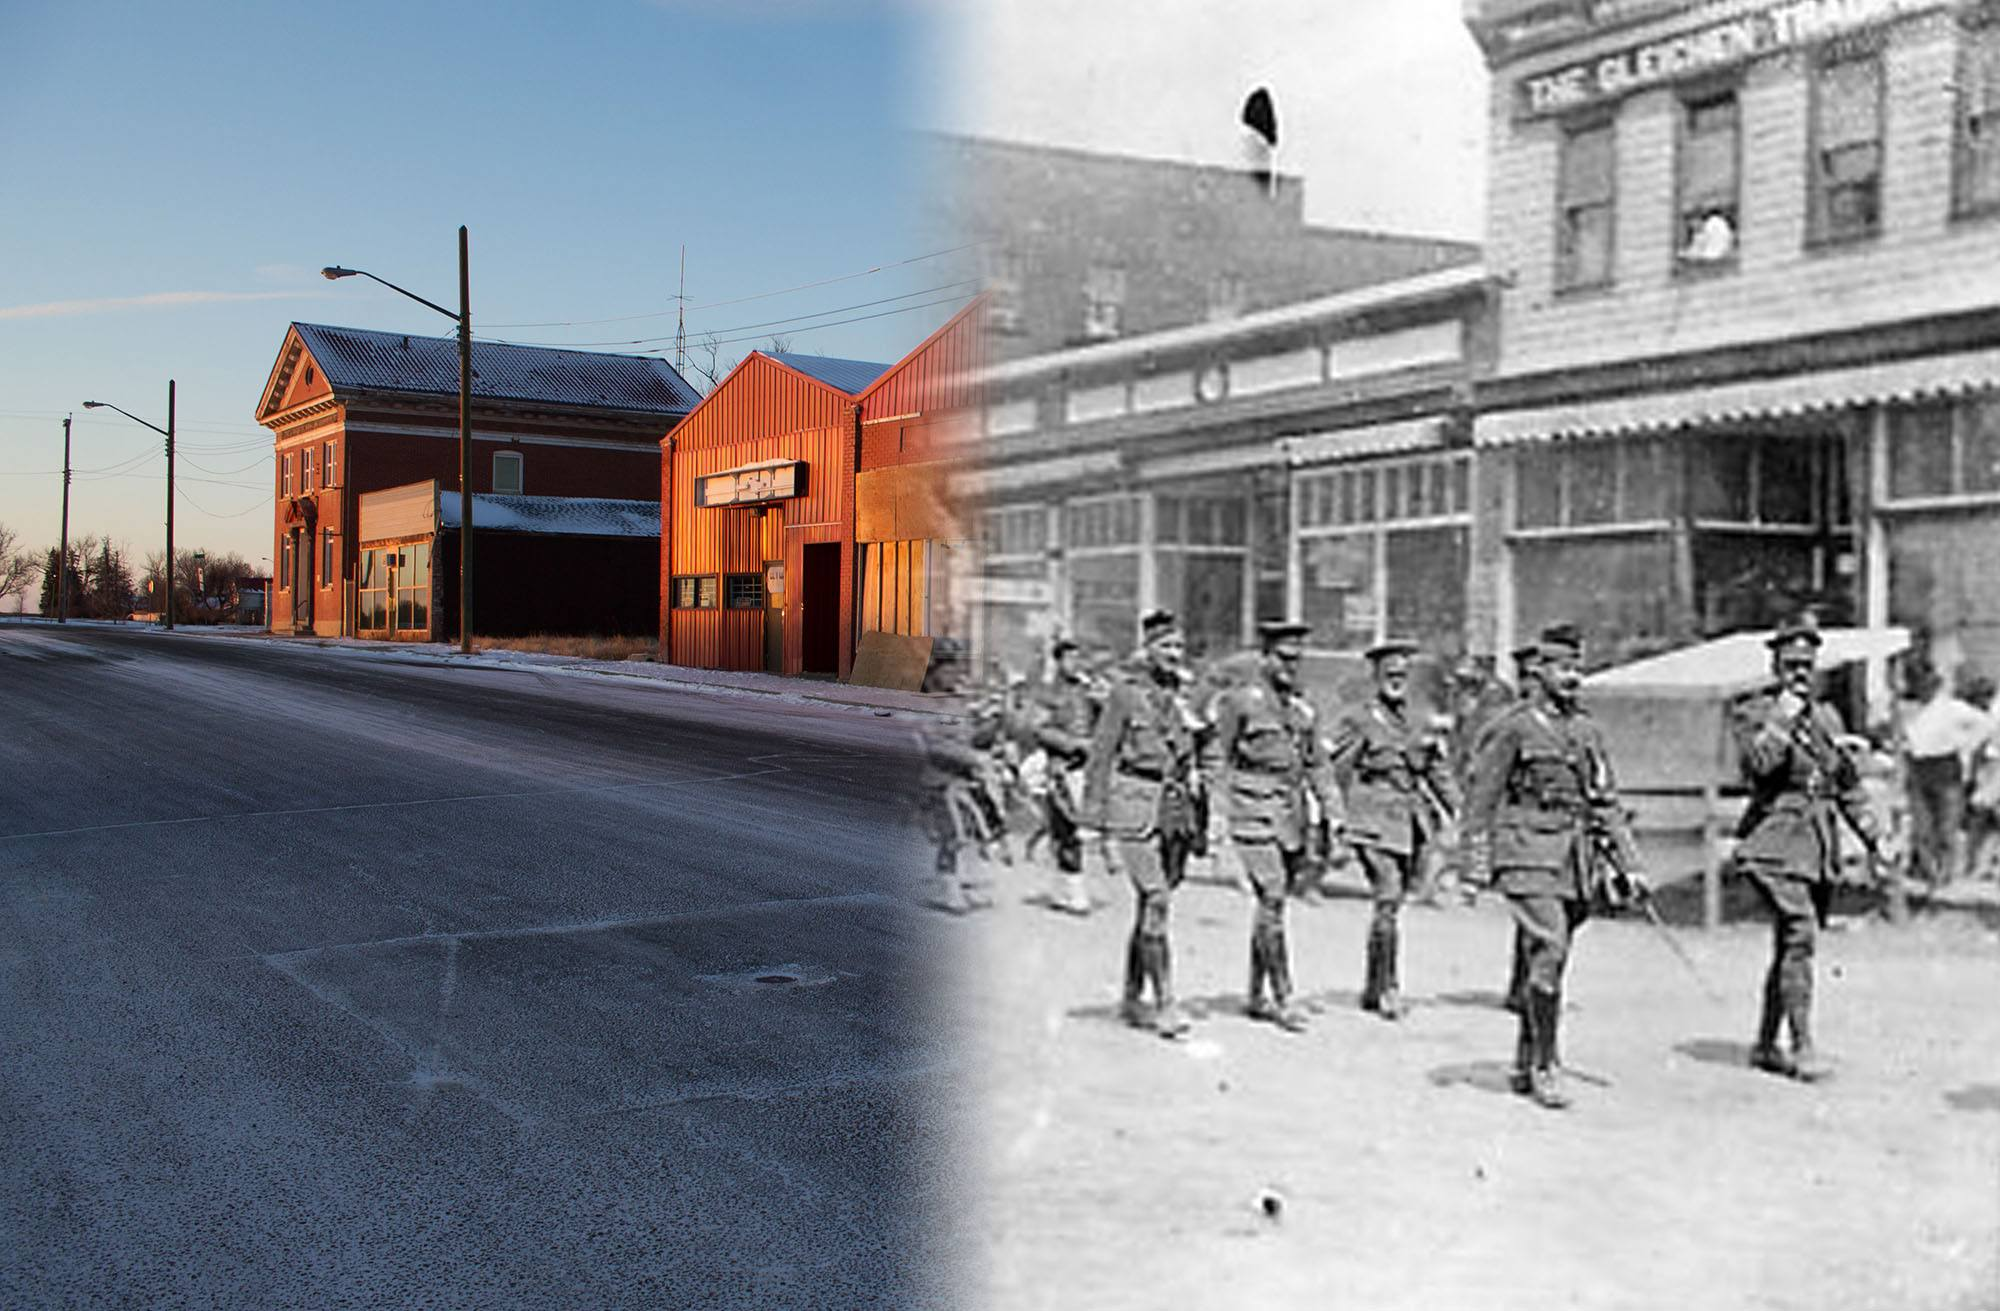 Gleichen's soldiers put on a military parade before heading to war in 1915 (Glenbow Museum and Archives/On This Spot)